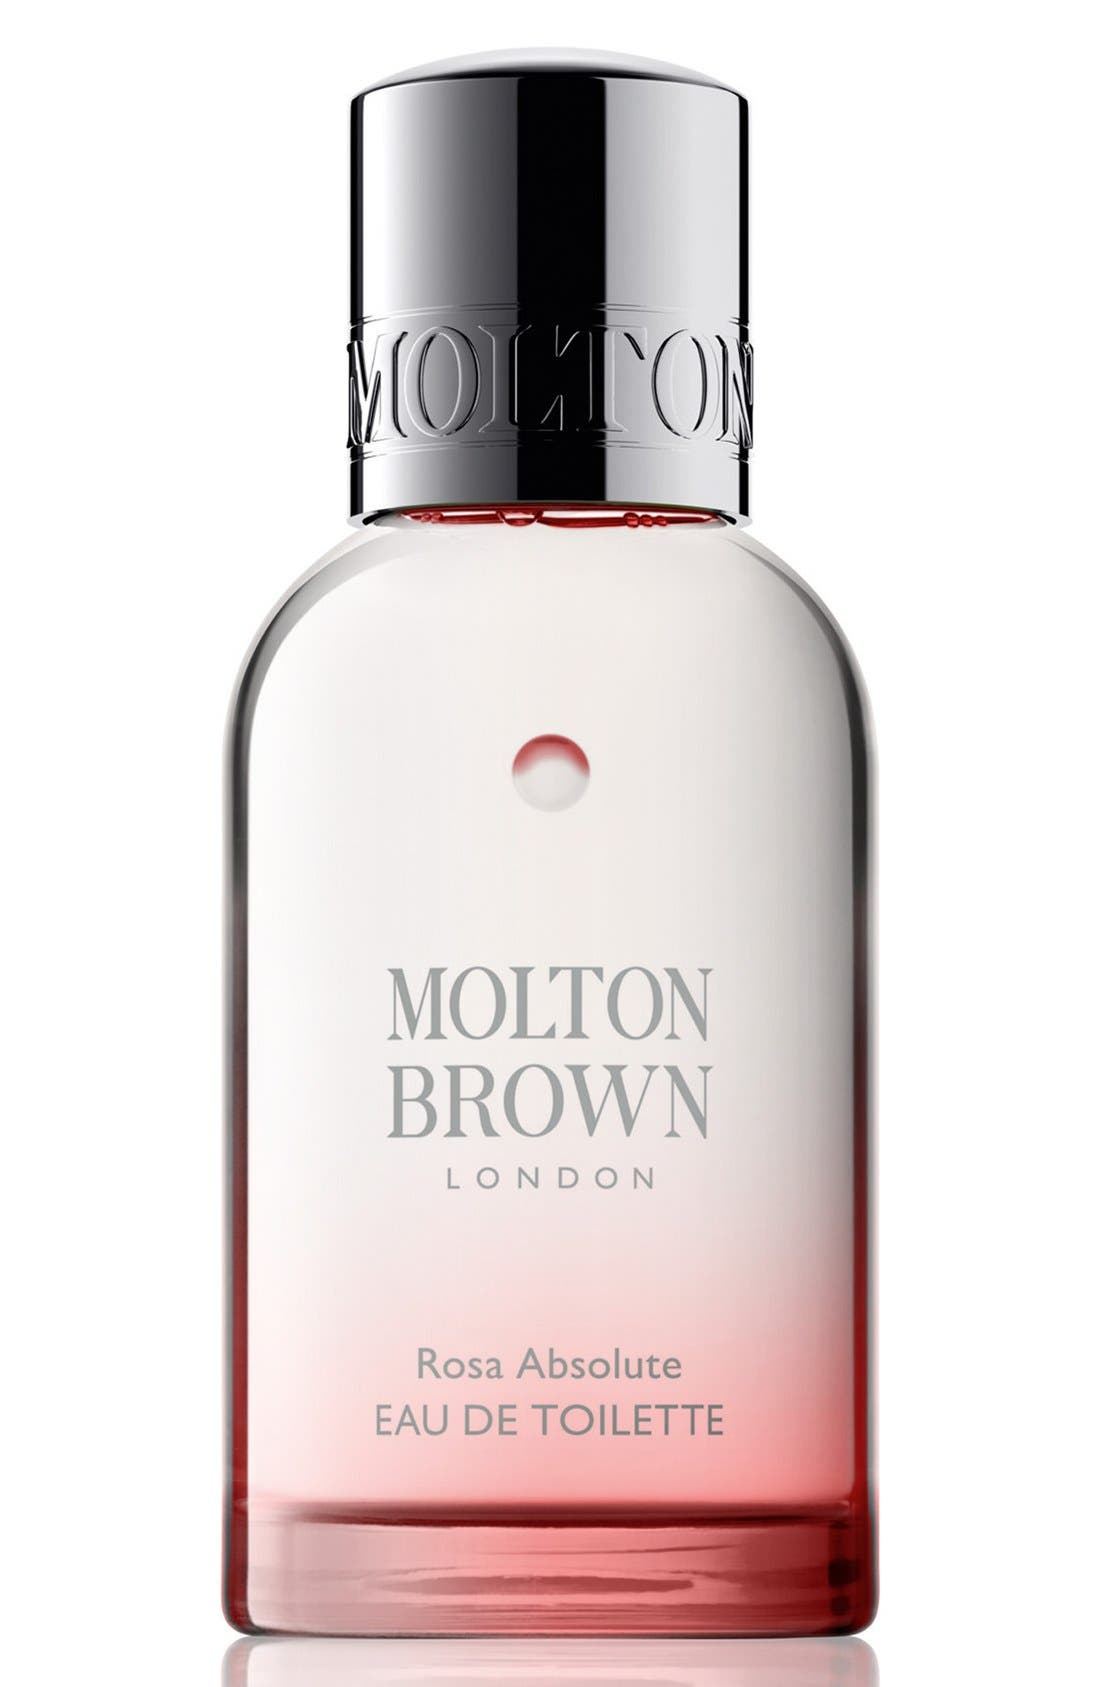 MOLTON BROWN London Rosa Absolute Eau de Toilette